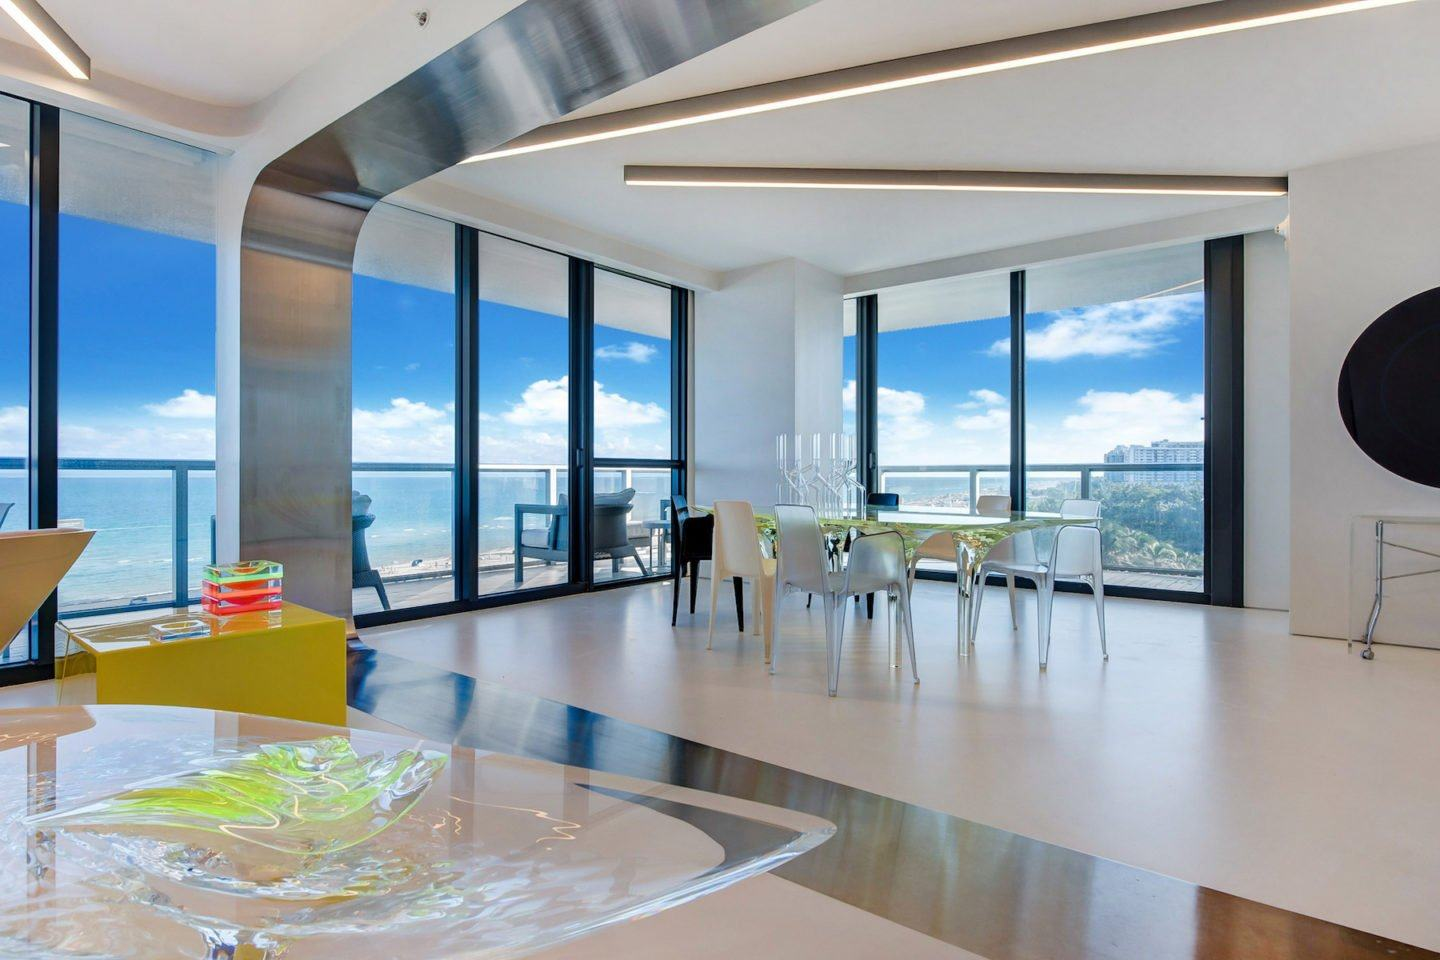 iGNANT-Architecture-Zaha-Hadid-Beach-Apartment-003